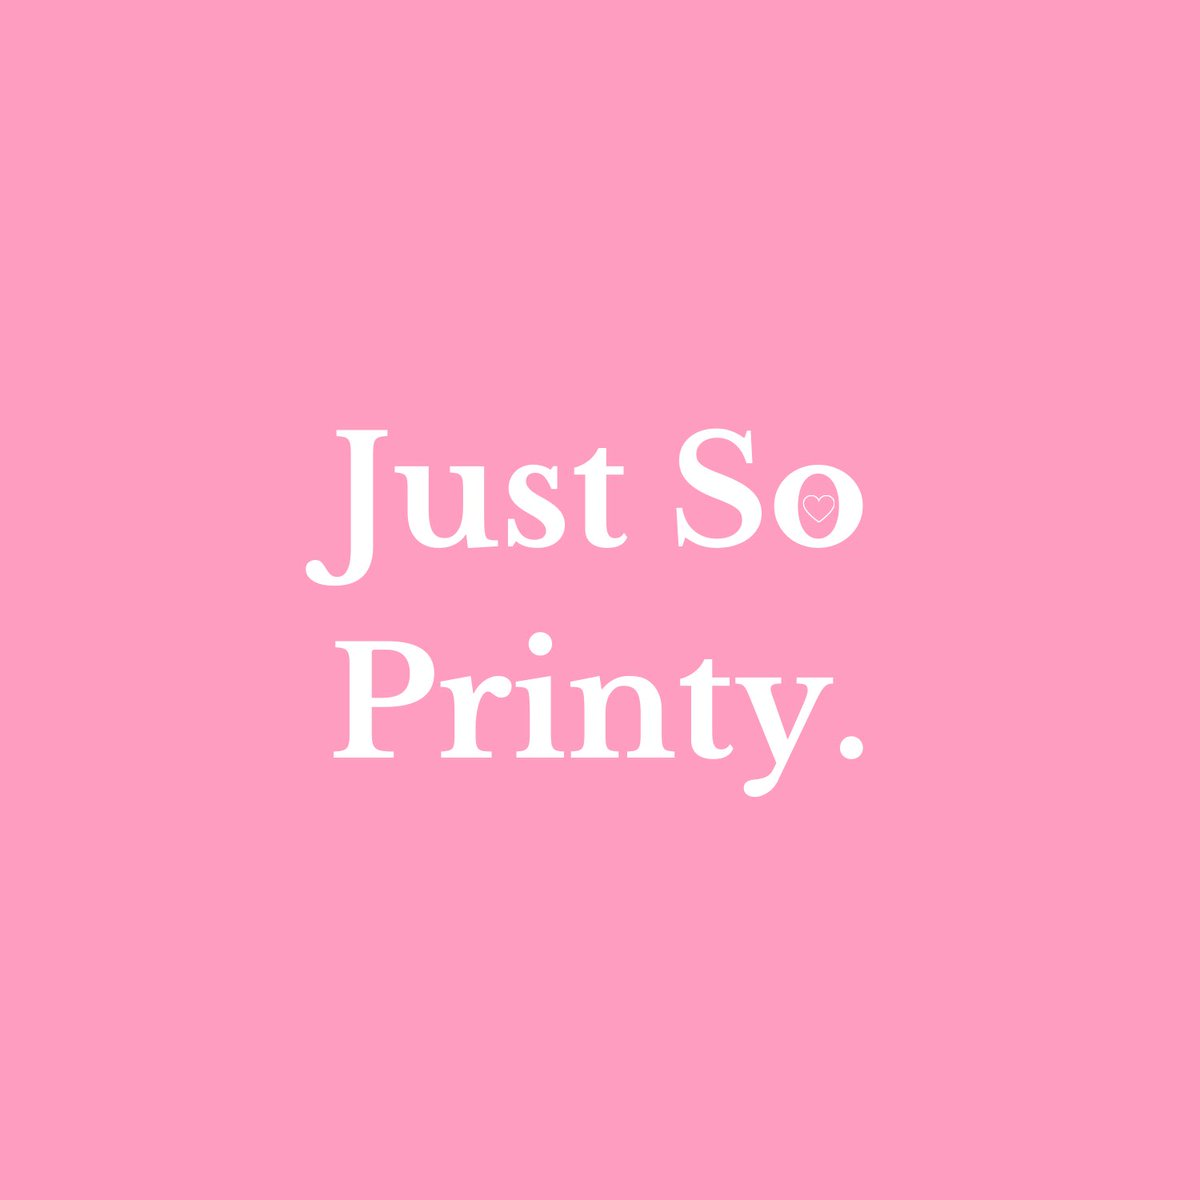 SO excited to announce my shop name #JustSoPrinty  logo and website to follow as soon as possible. In the meantime, catch me on Instagram - http://Instagram.com/justsoprinty  - #uksmallbiz #smallbusinessowners #comingsoonpic.twitter.com/WINIqDoAvf